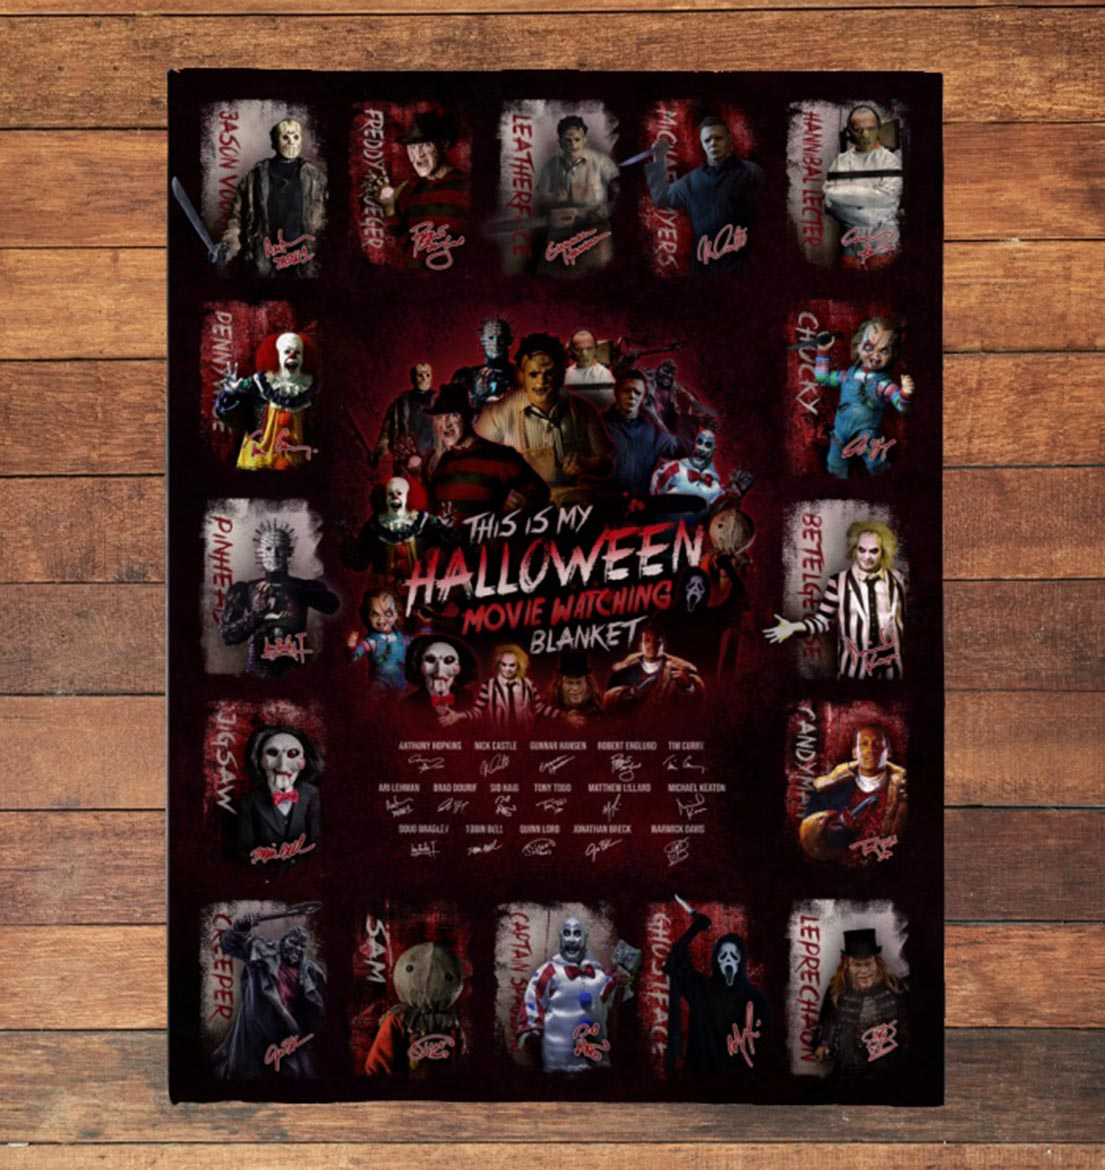 All classic horror movies characters This is my halloween movie watching blanket - Picture 1